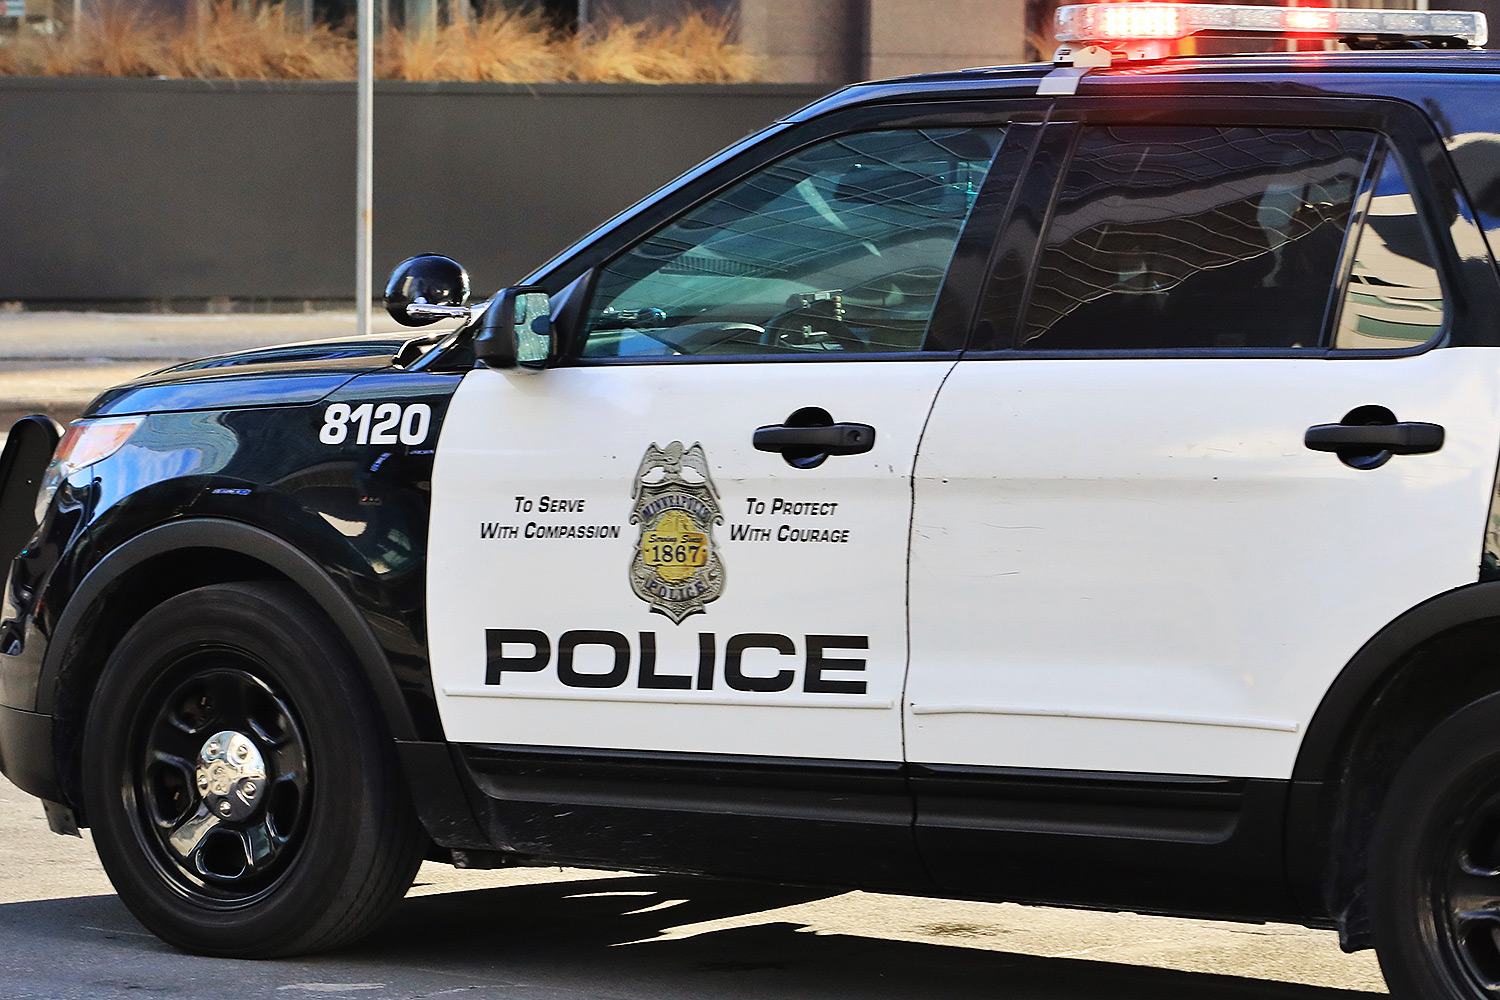 Police vehicle for the Minneapolis Police Department